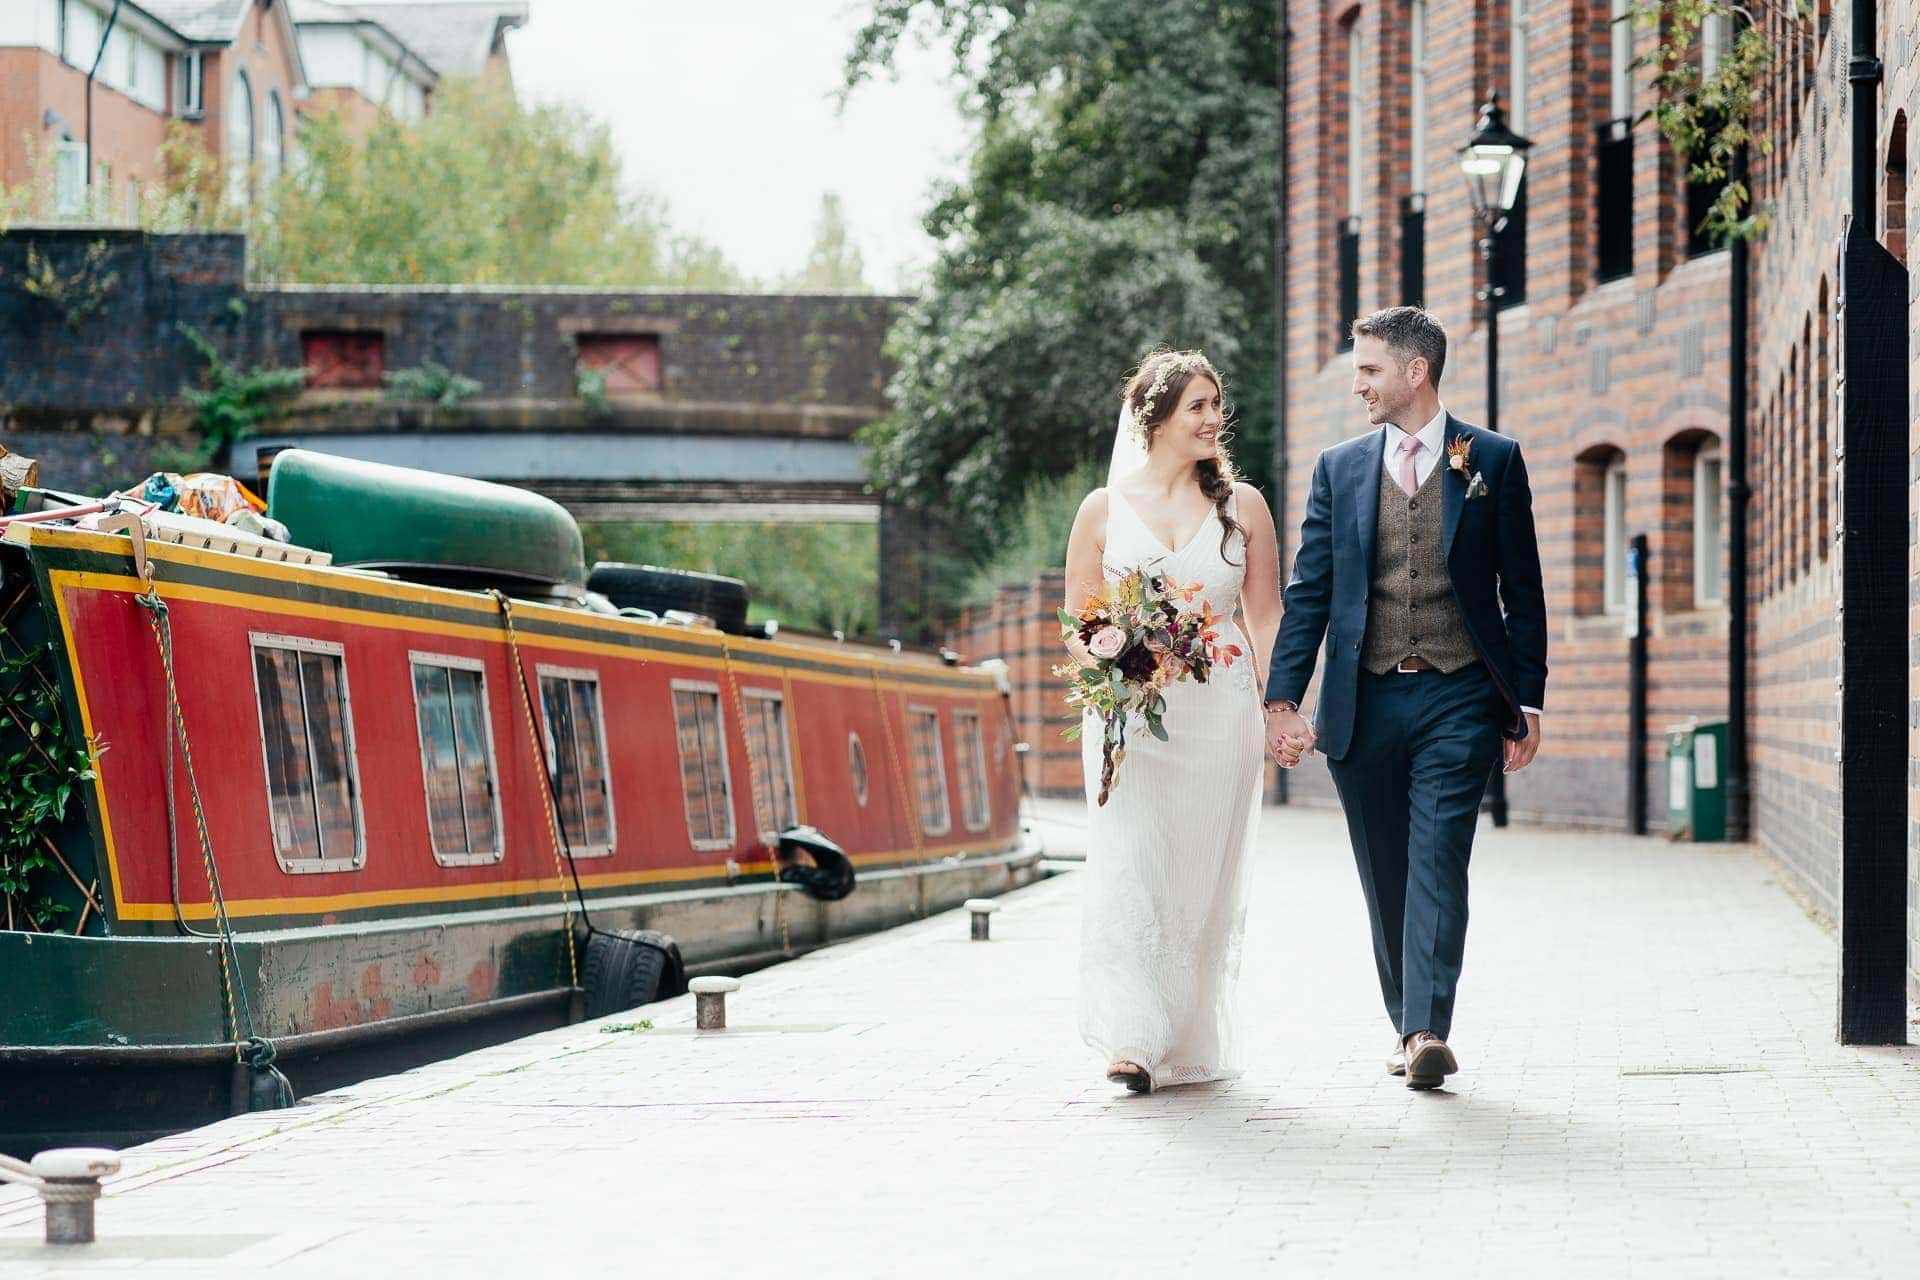 Birmingham Small Wedding Photography | Catrin + Daniel